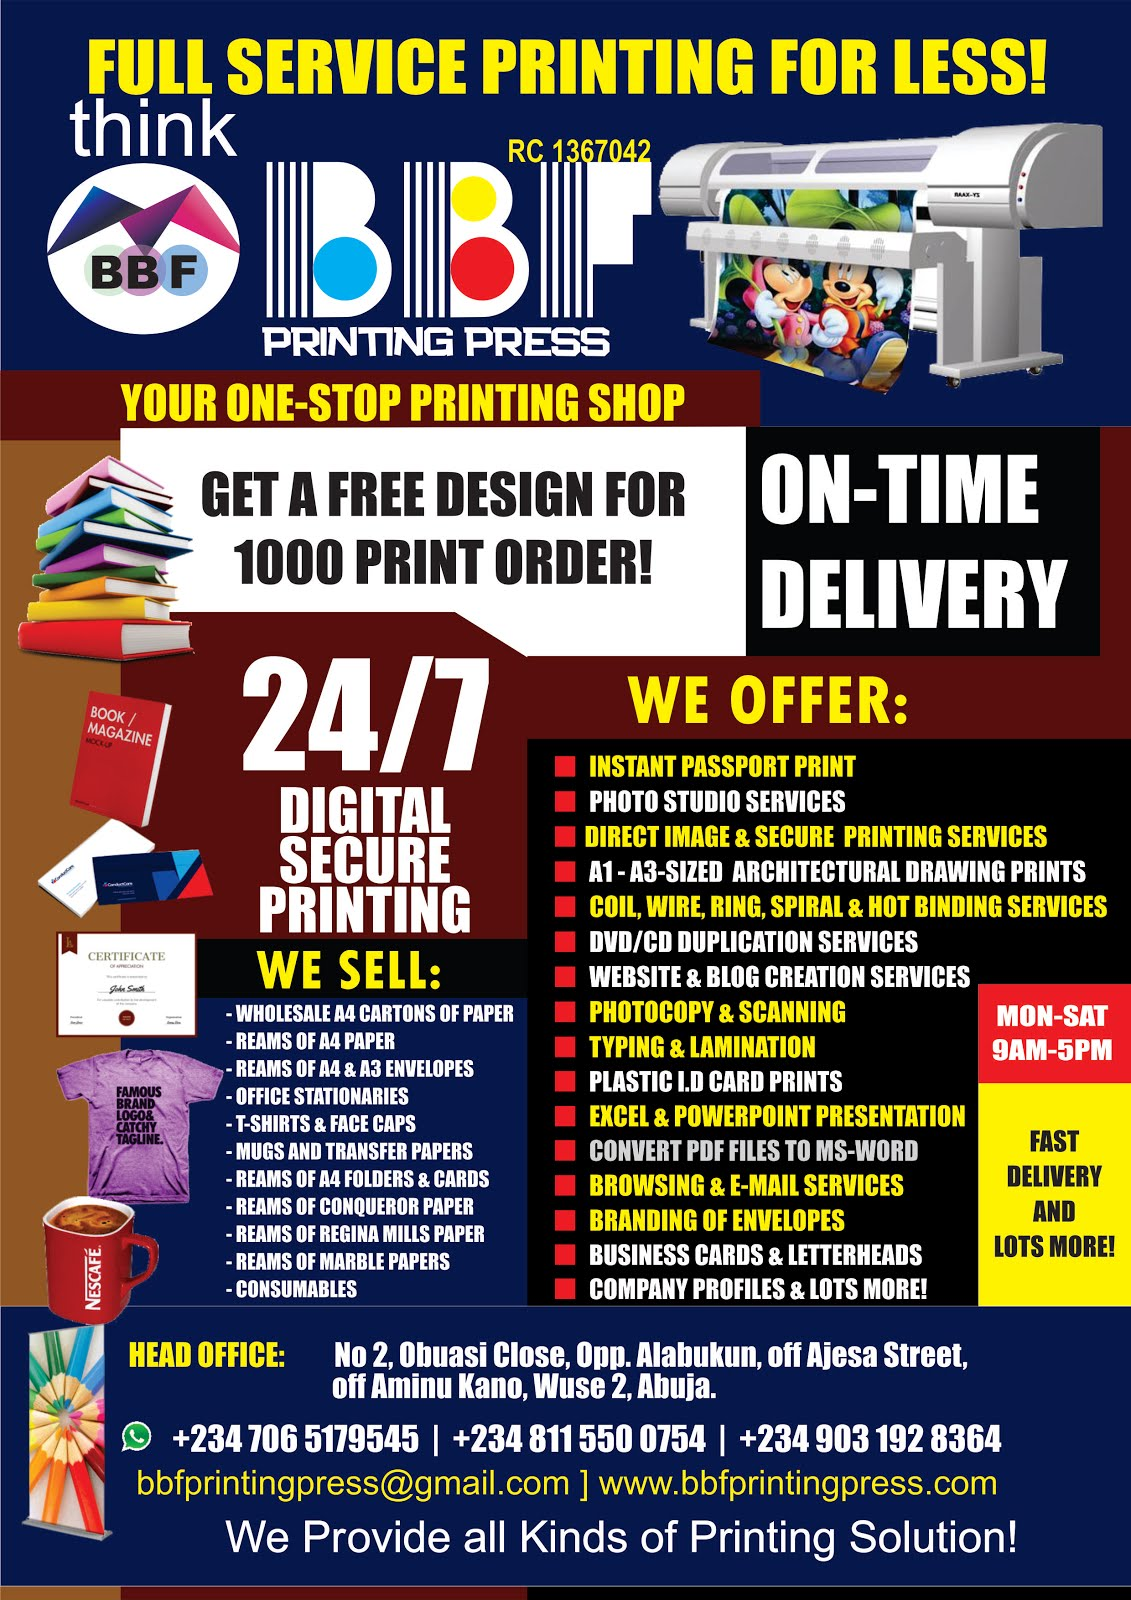 BBF PRINTING PRESS NIG LTD